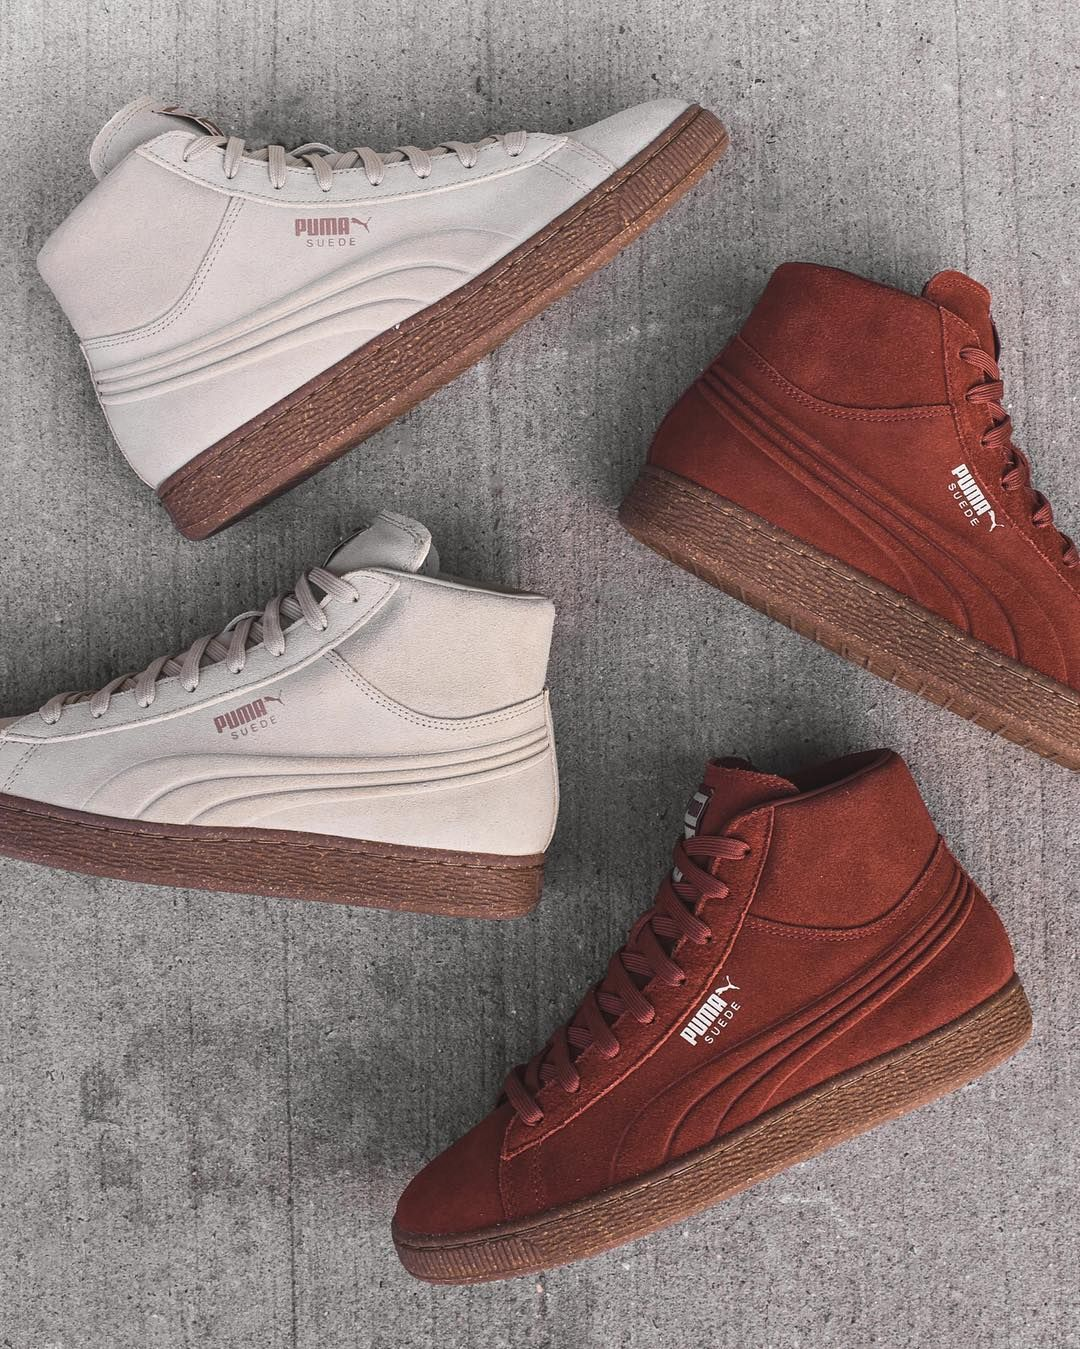 26edee451d5710 Puma Suede Mid Embossed Pack. Available at Kith Manhattan Kith Brooklyn and  KithNYC.com.  80 USD. by kith